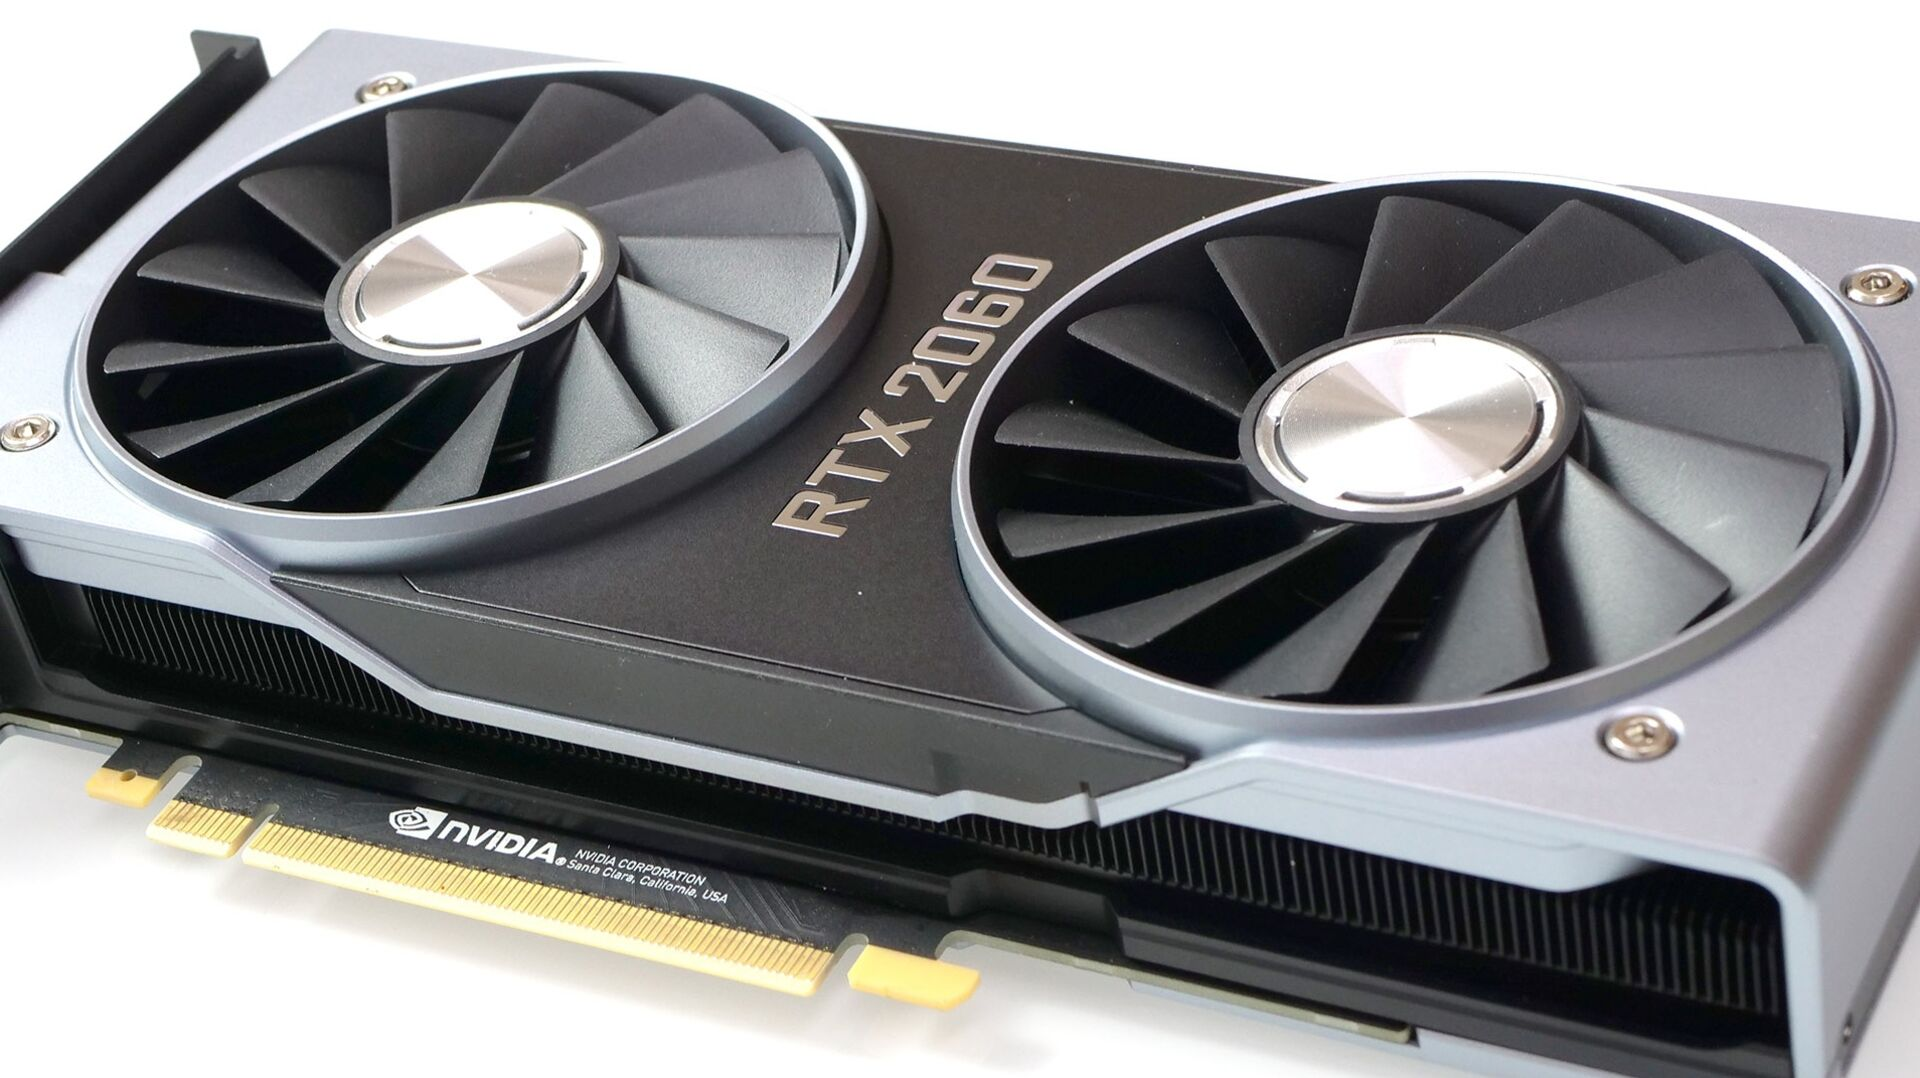 Nvidia GeForce RTX 2060: Ray tracing comes to the mainstream